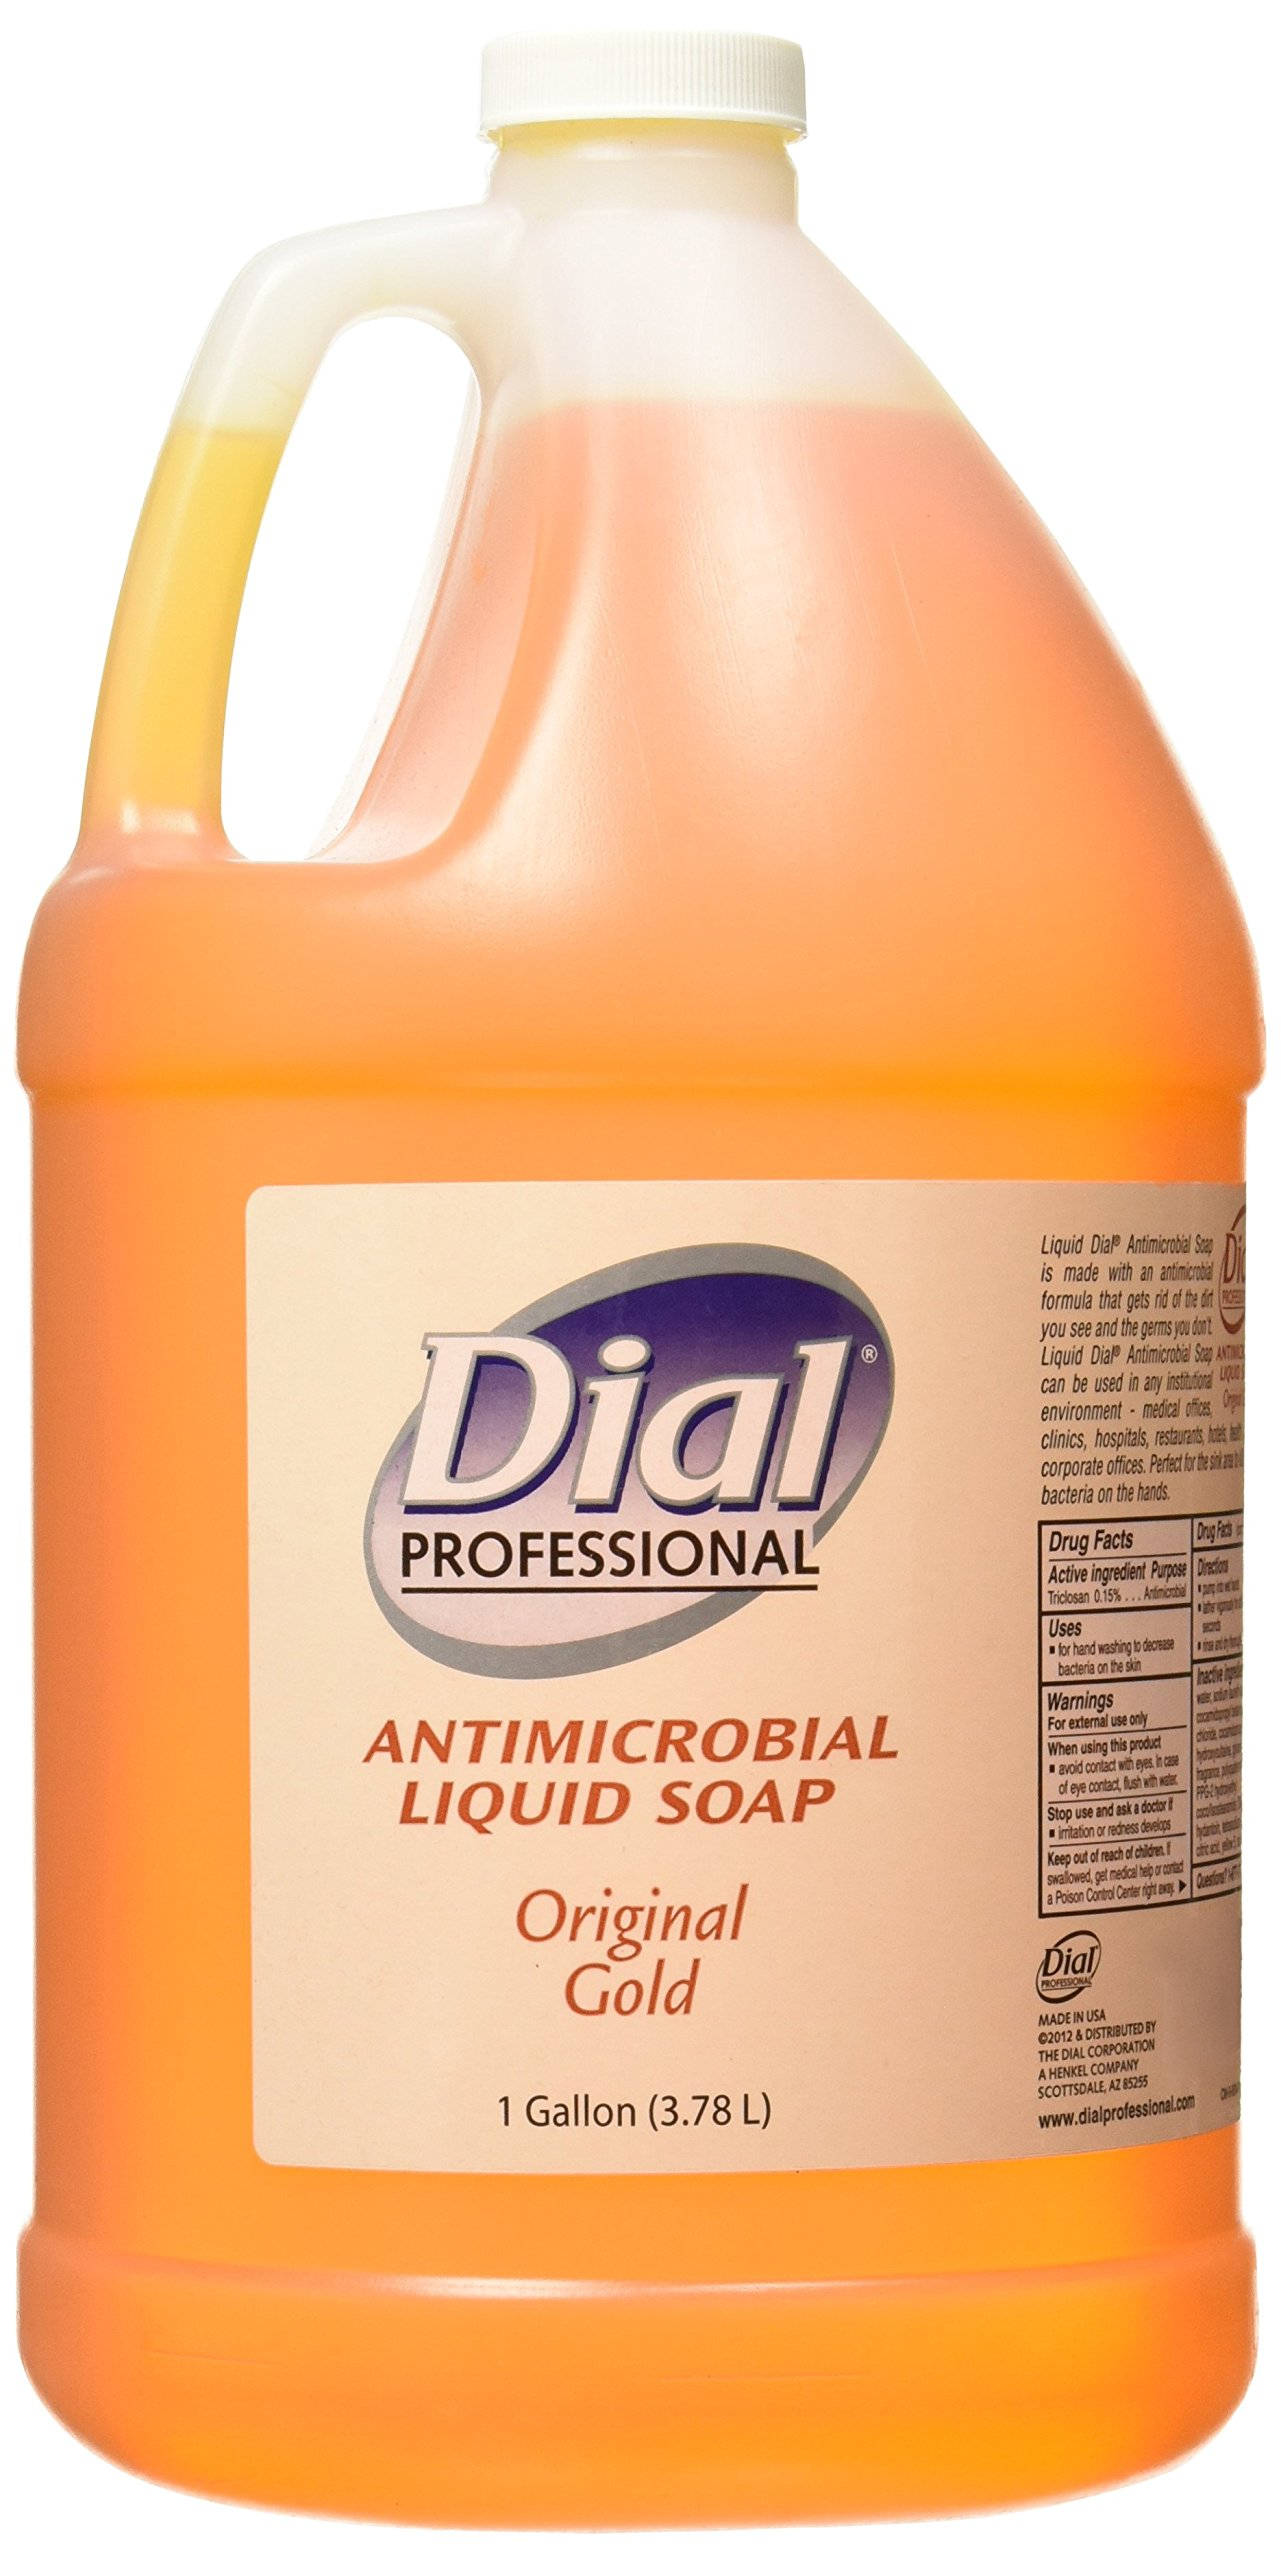 Dial Corporation 88047 Dial Liquid Gold Antimicrobial Soap, 1 gal by Dial Corporation